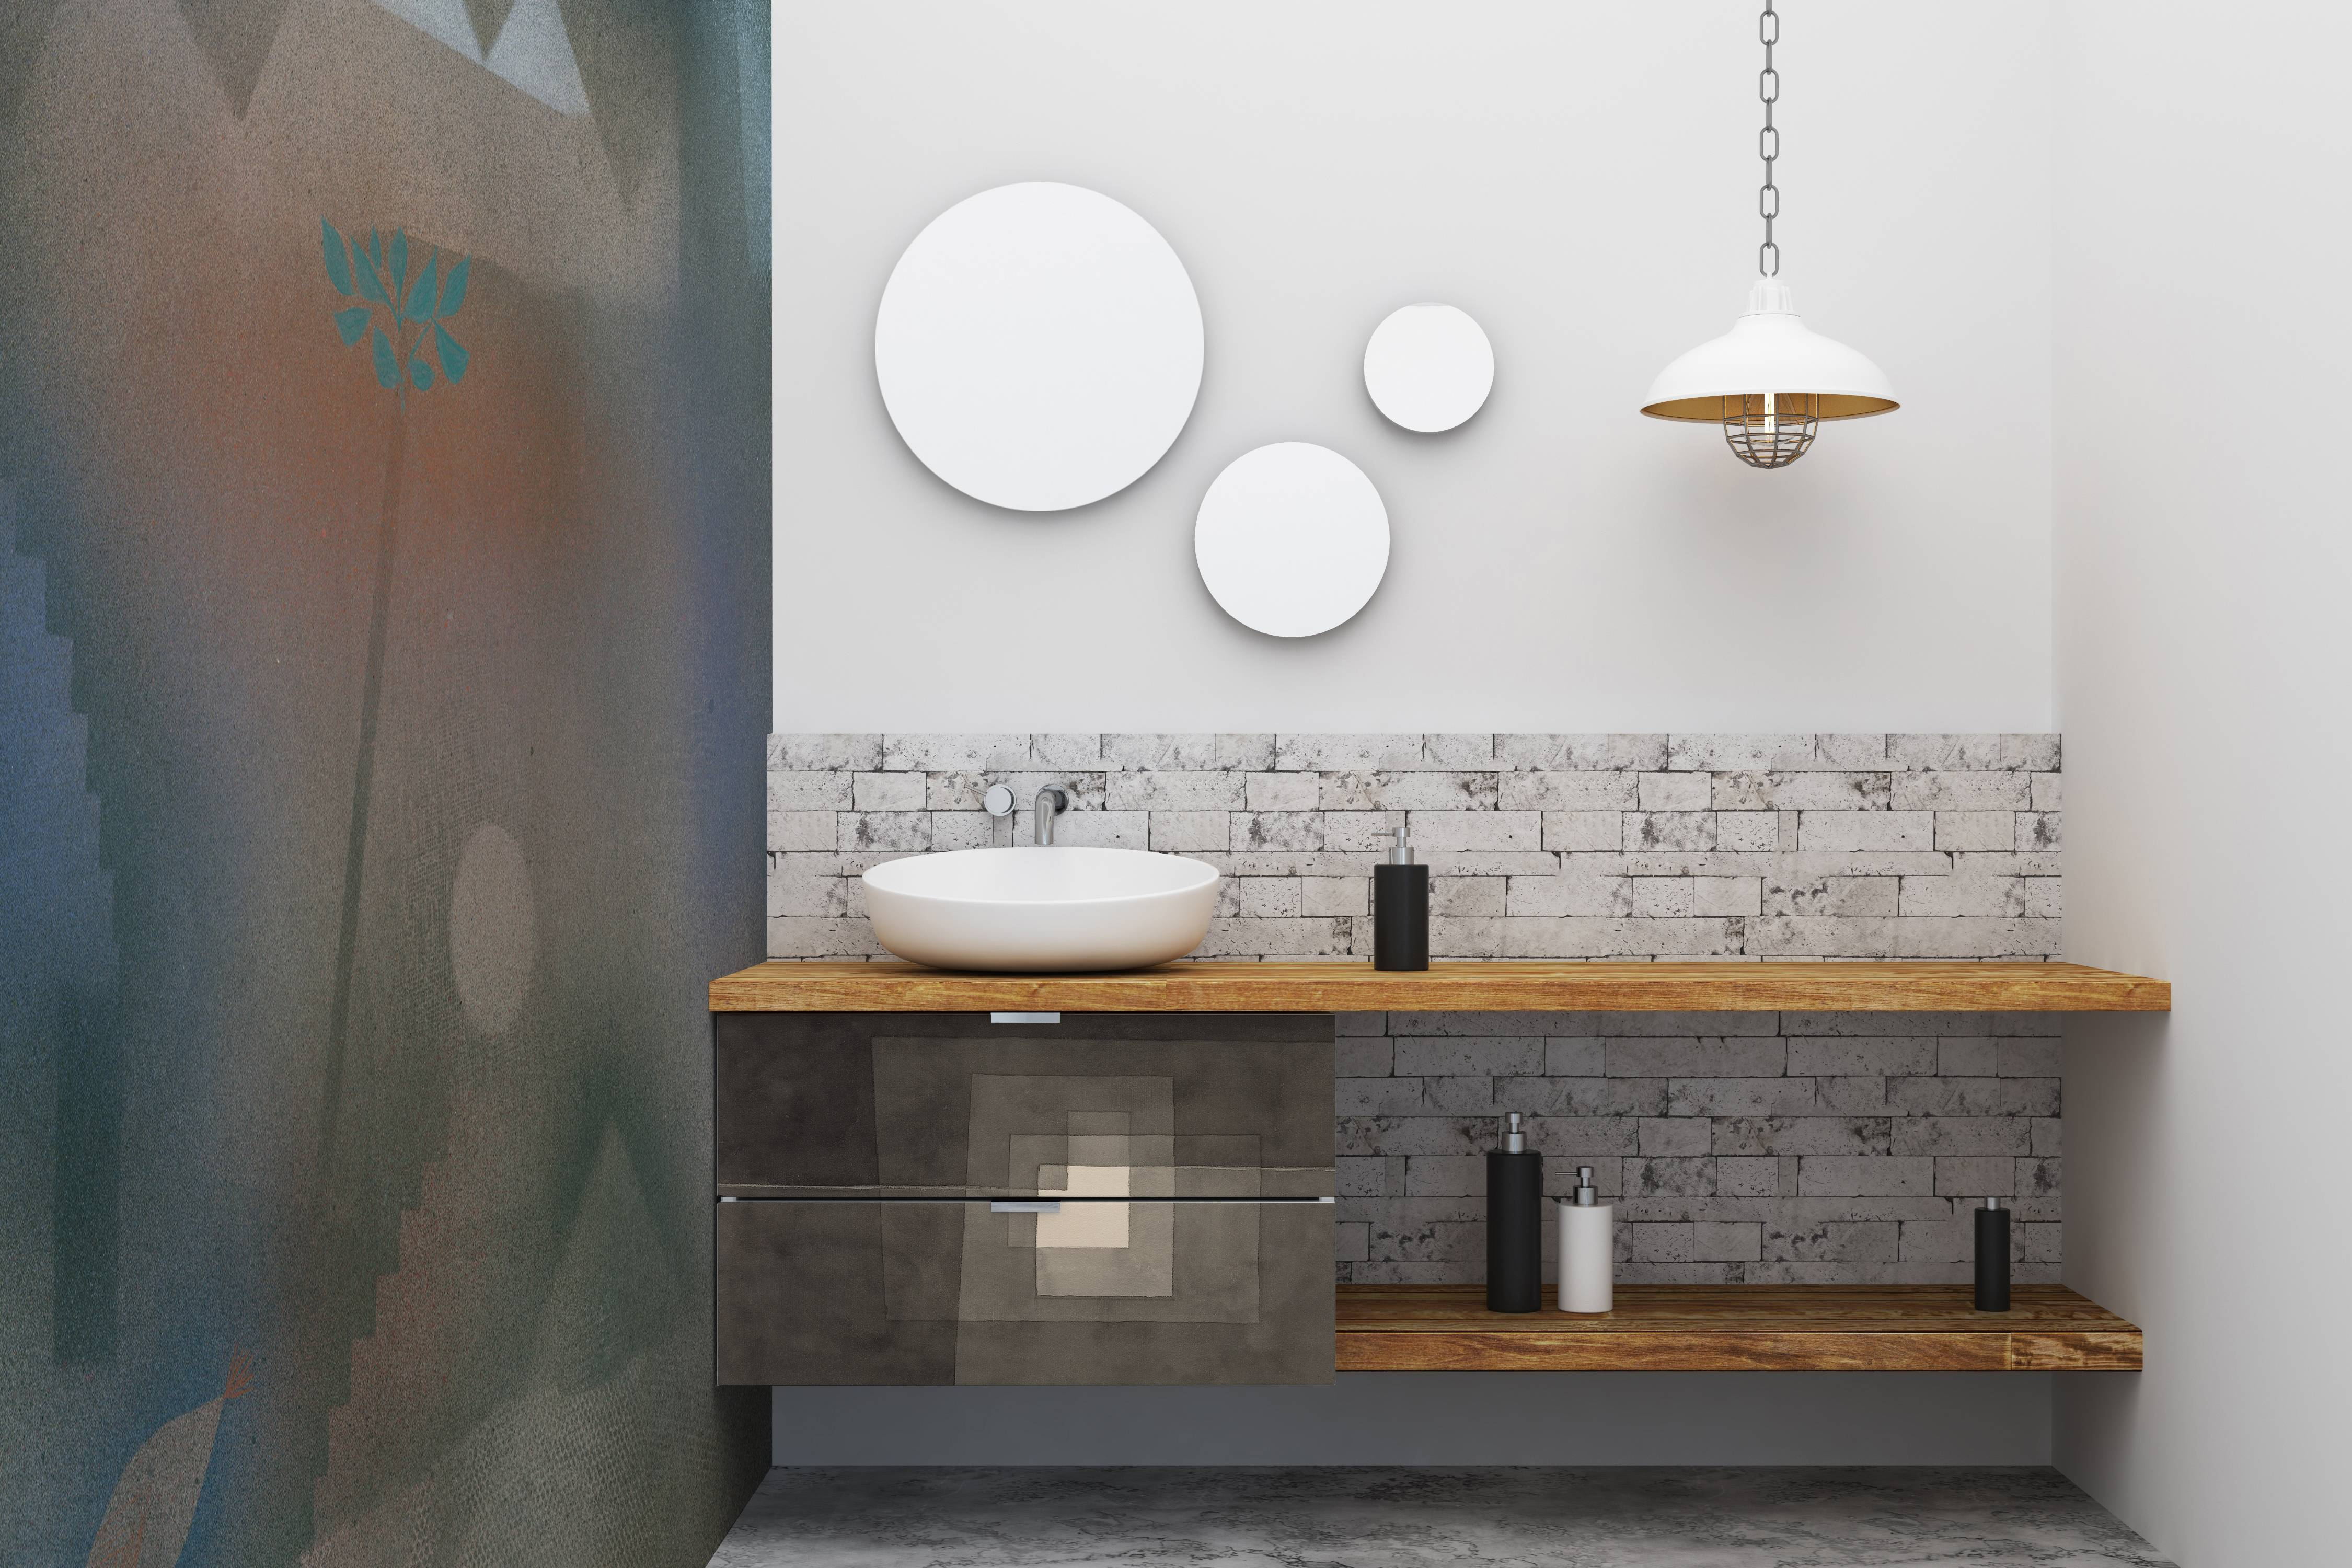 grays and browns • Bathroom - Minimalist - Wall Murals - Stickers ...